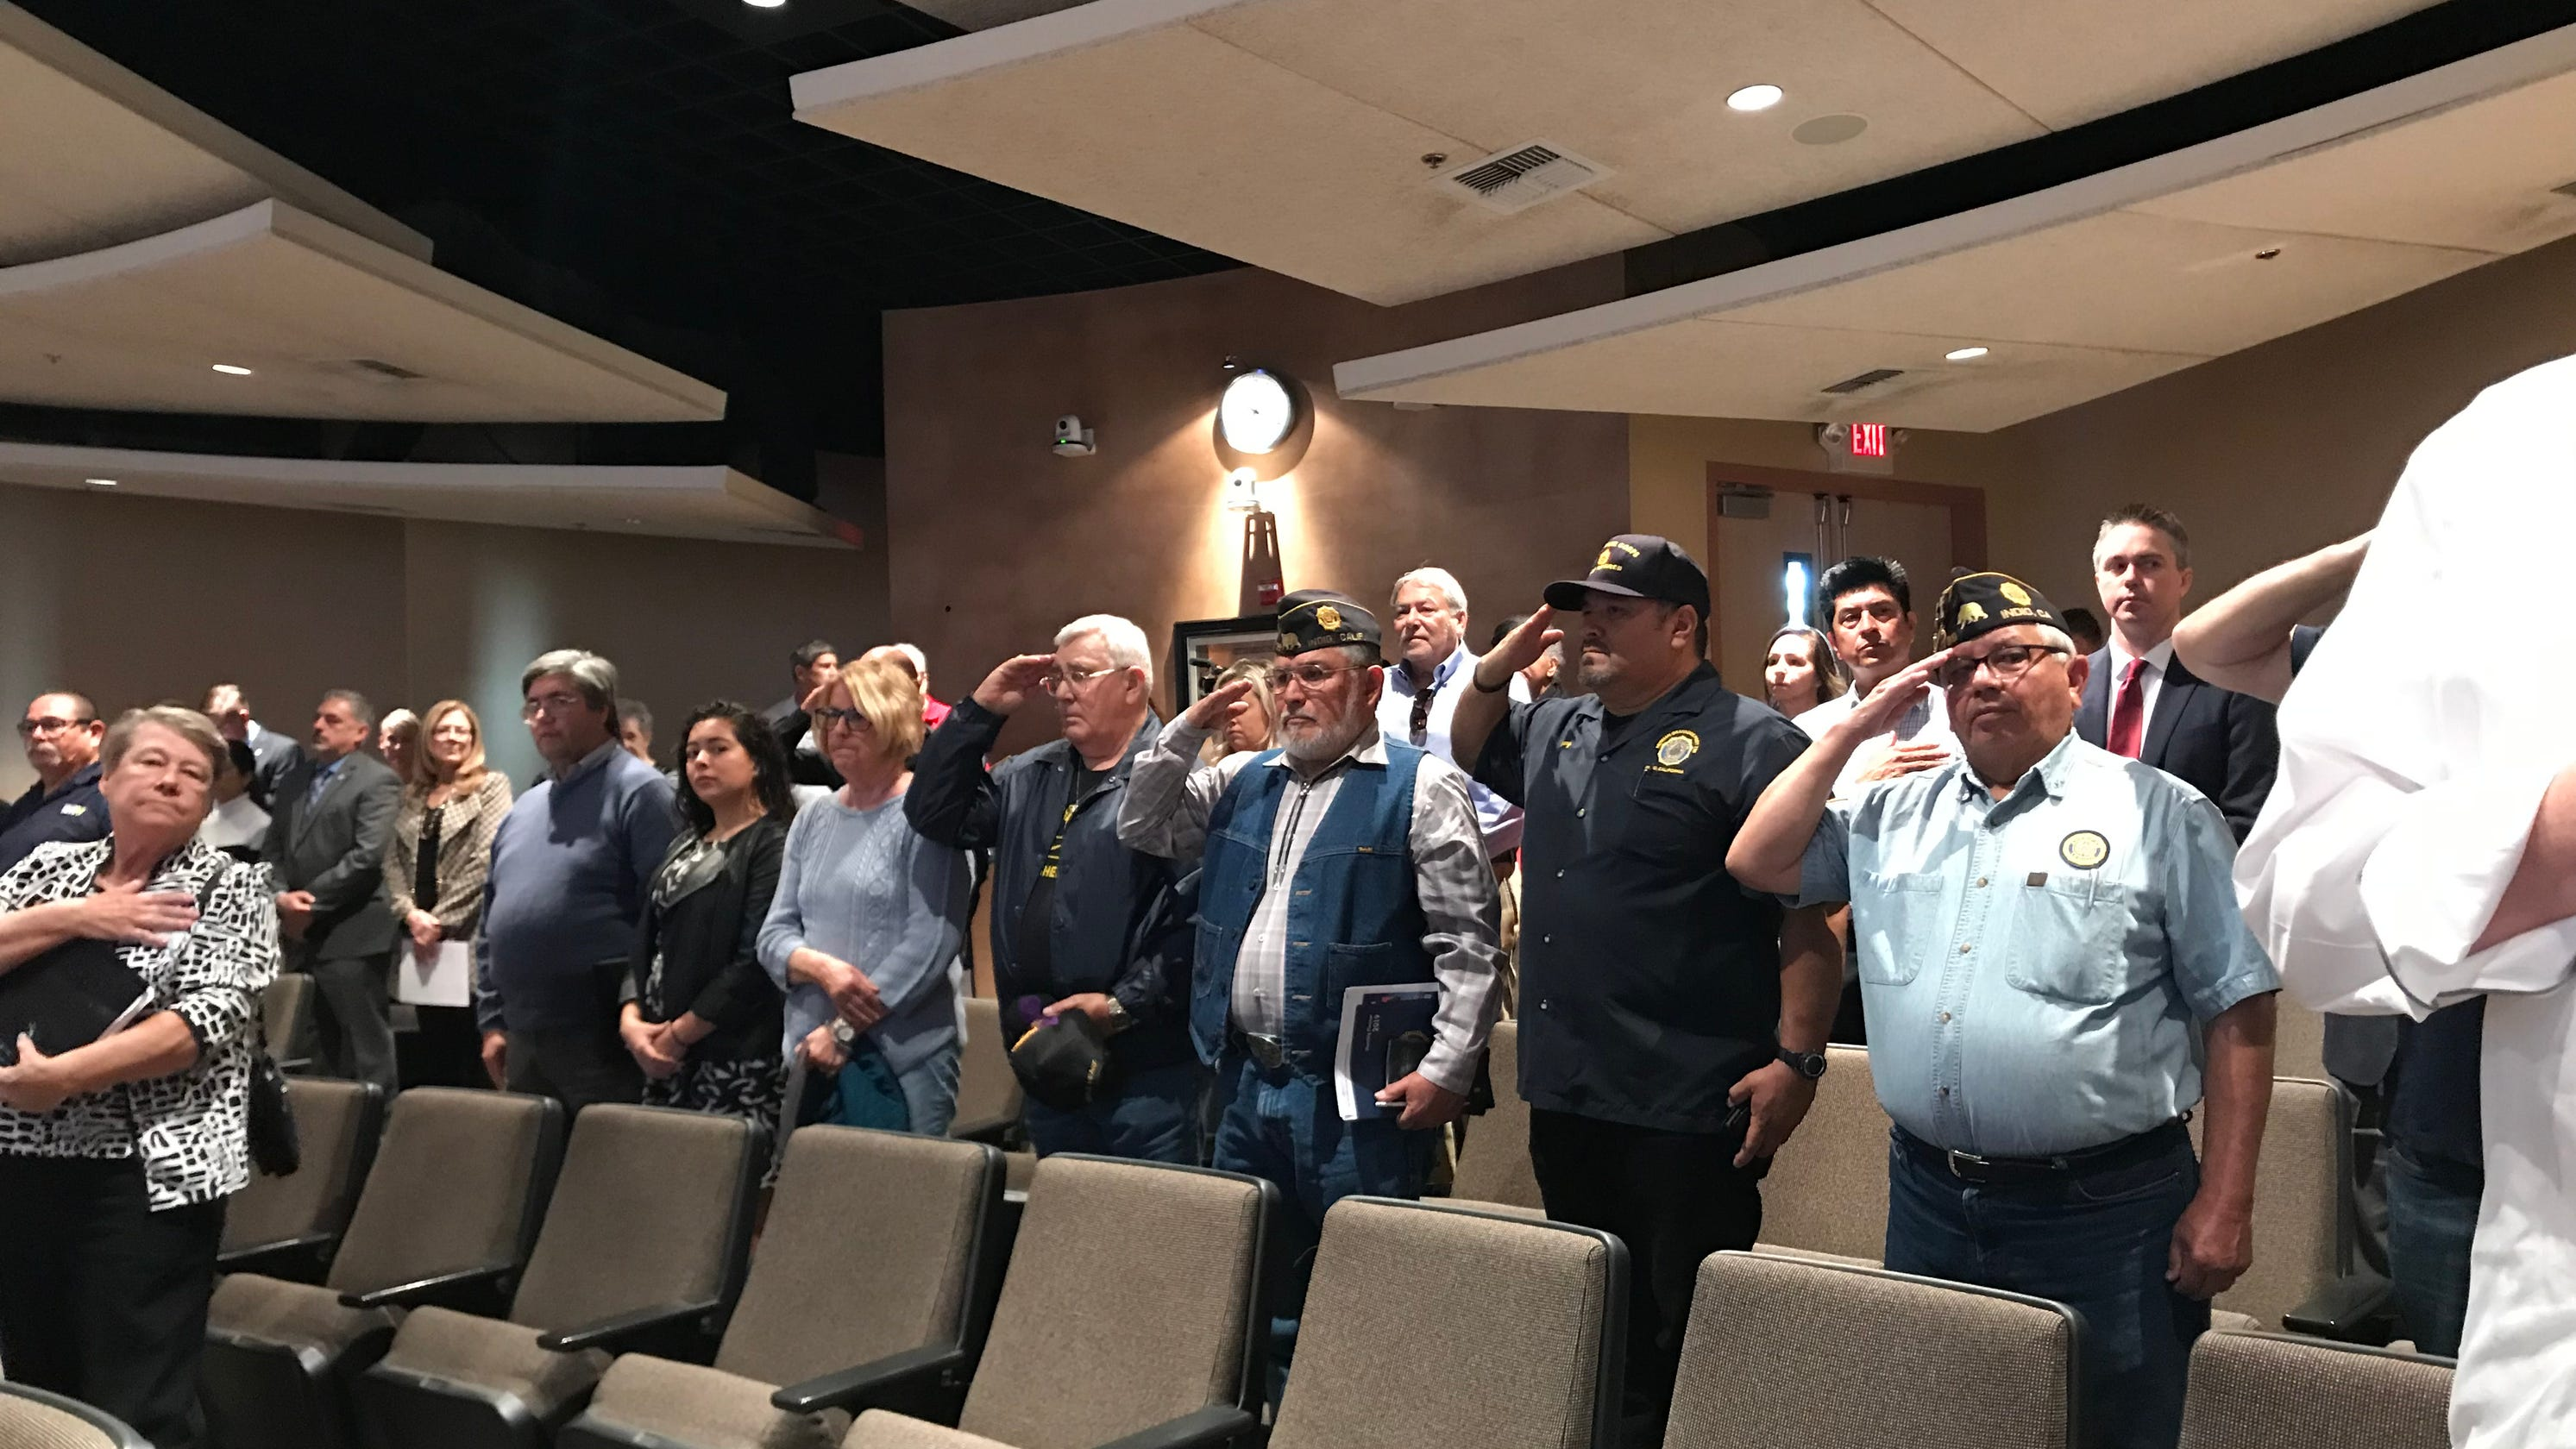 Palm Springs Area Veterans Survey Finds High Level Of Emotional Distress